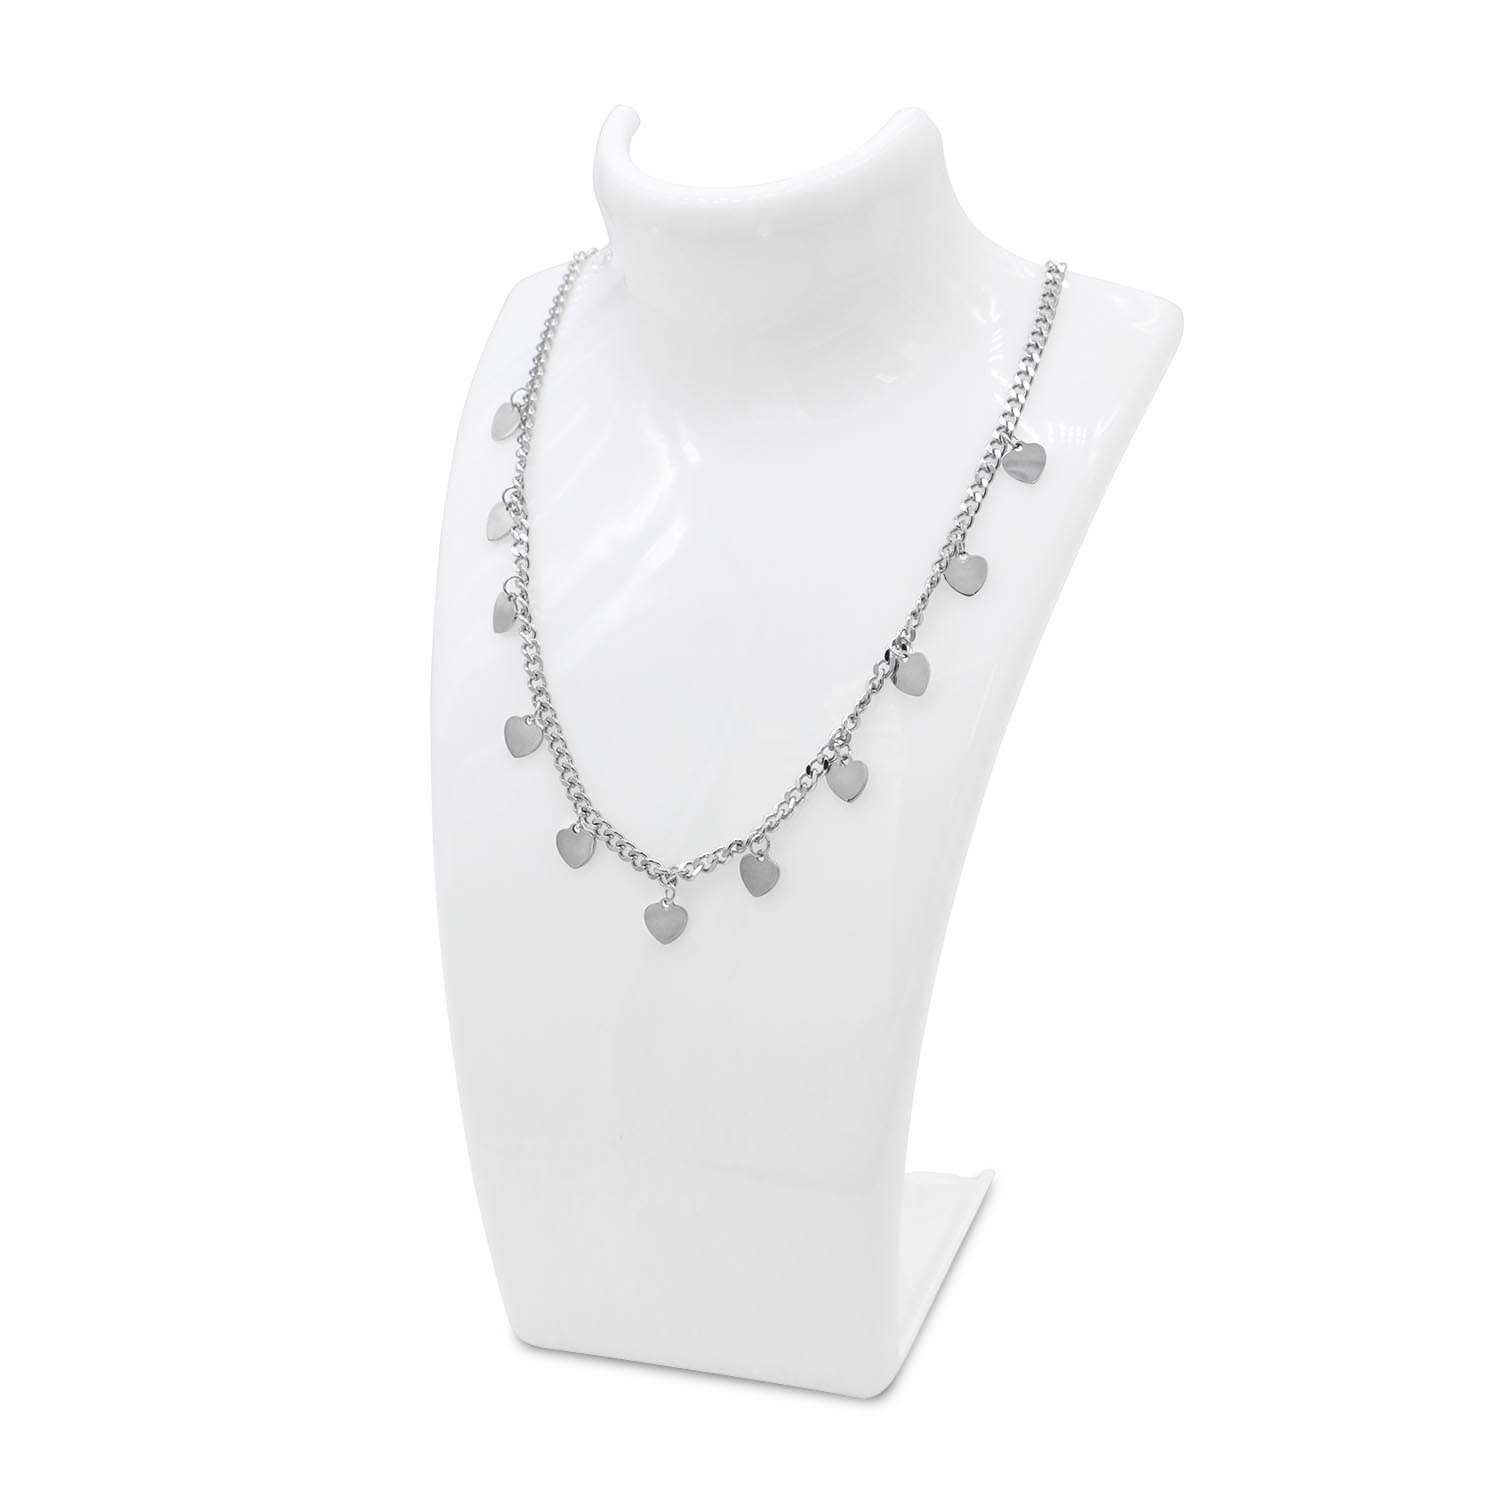 Choker necklace Curb chain with heart shape pendant Silver